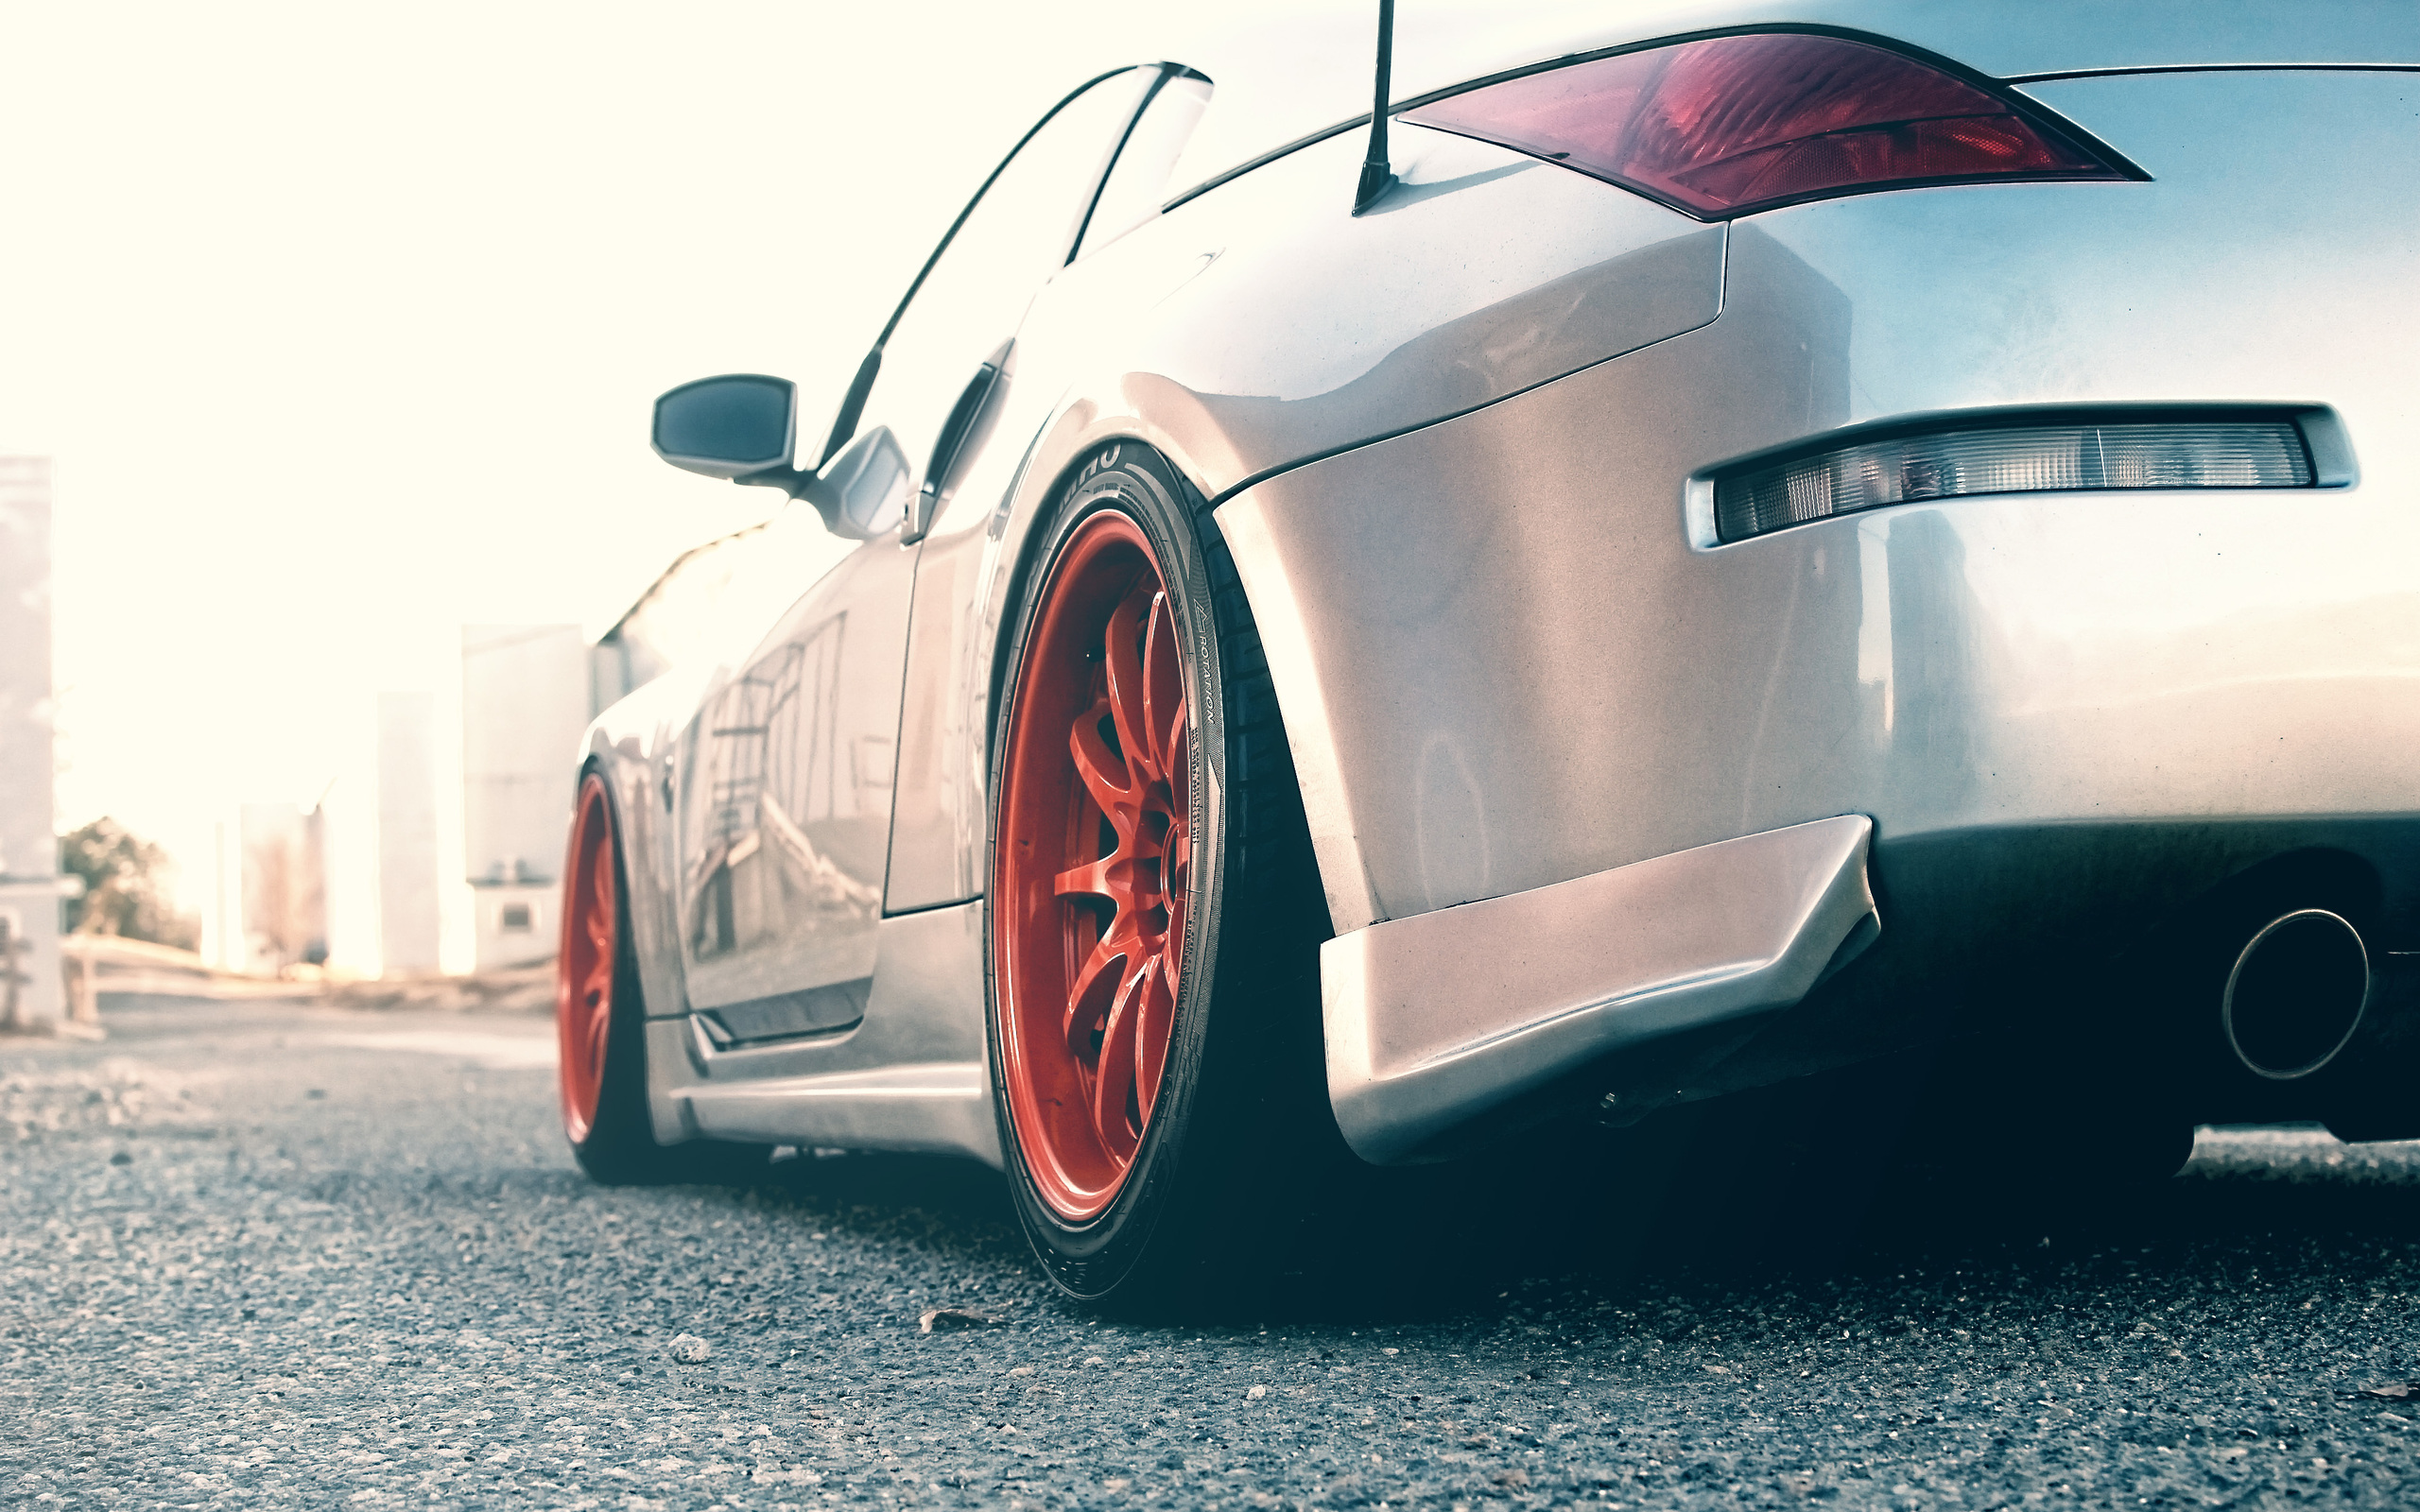 2560x1600 - Nissan 350Z Wallpapers 33